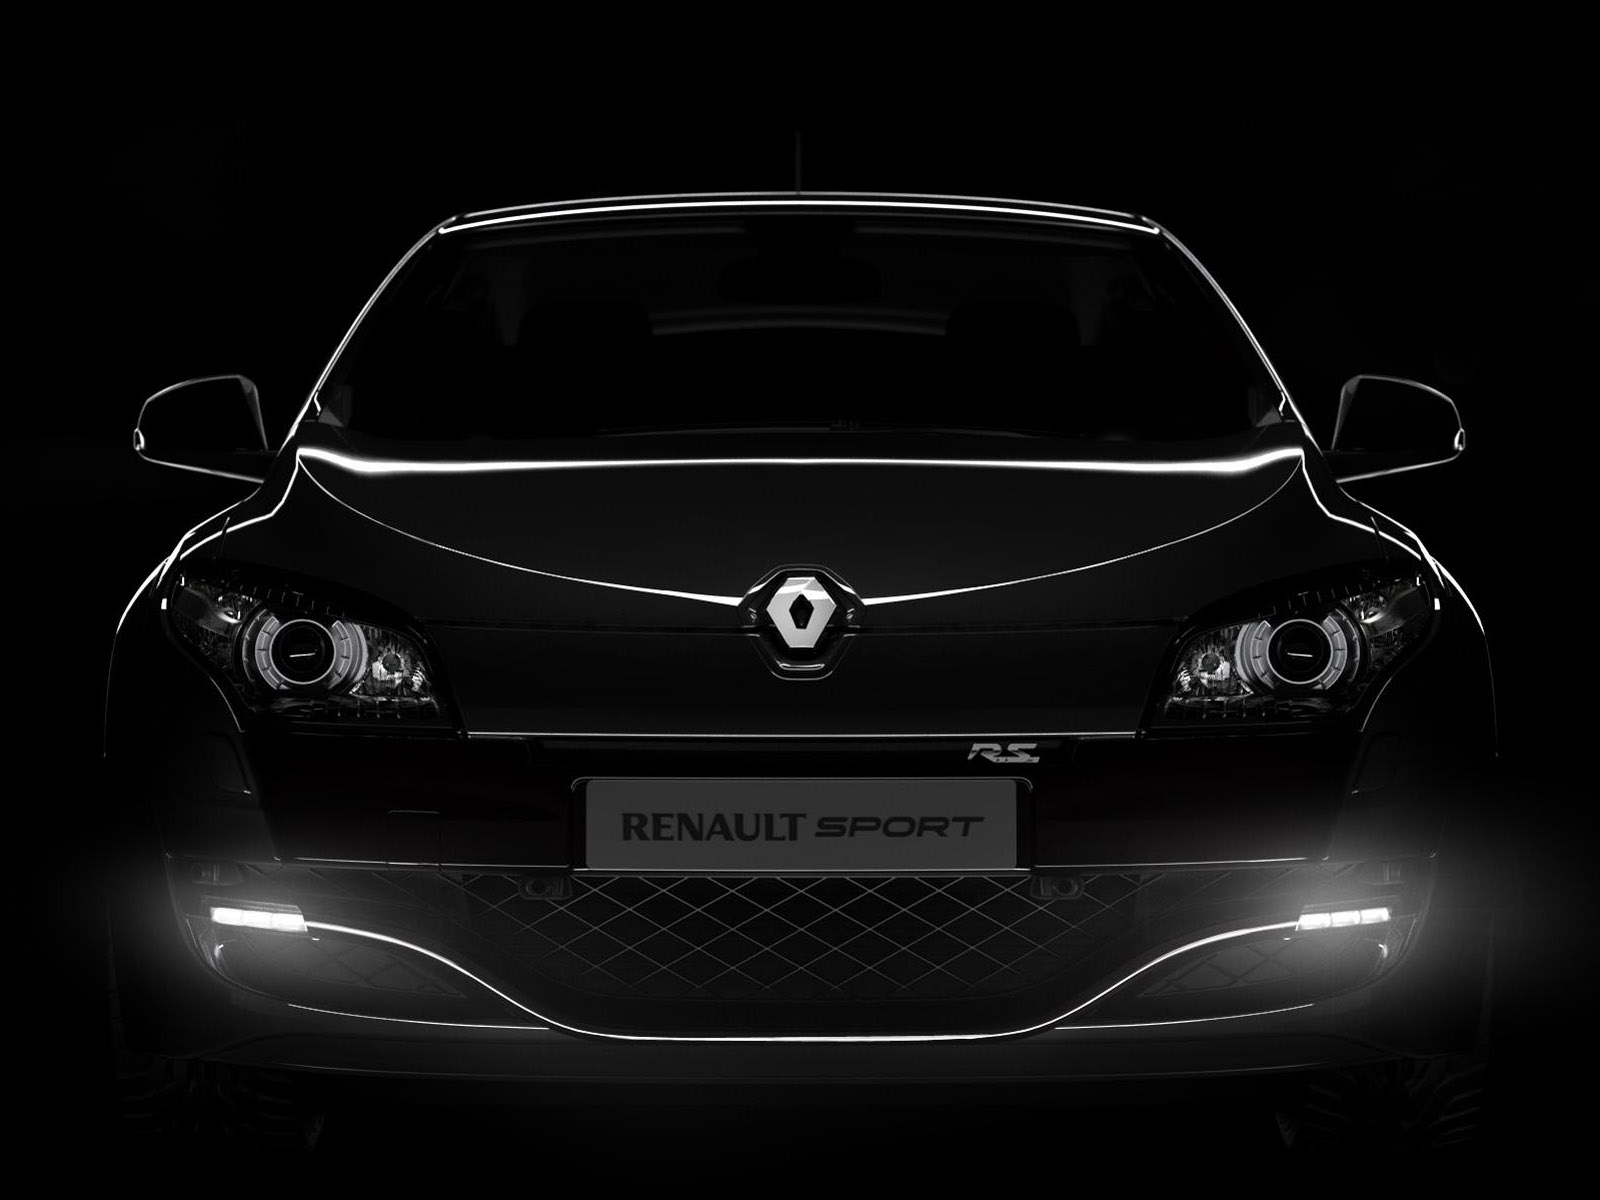 Football Hd Wallpapers For Iphone Best Renault Sport Wallpaper Desktop Wallpaper Wallpaperlepi